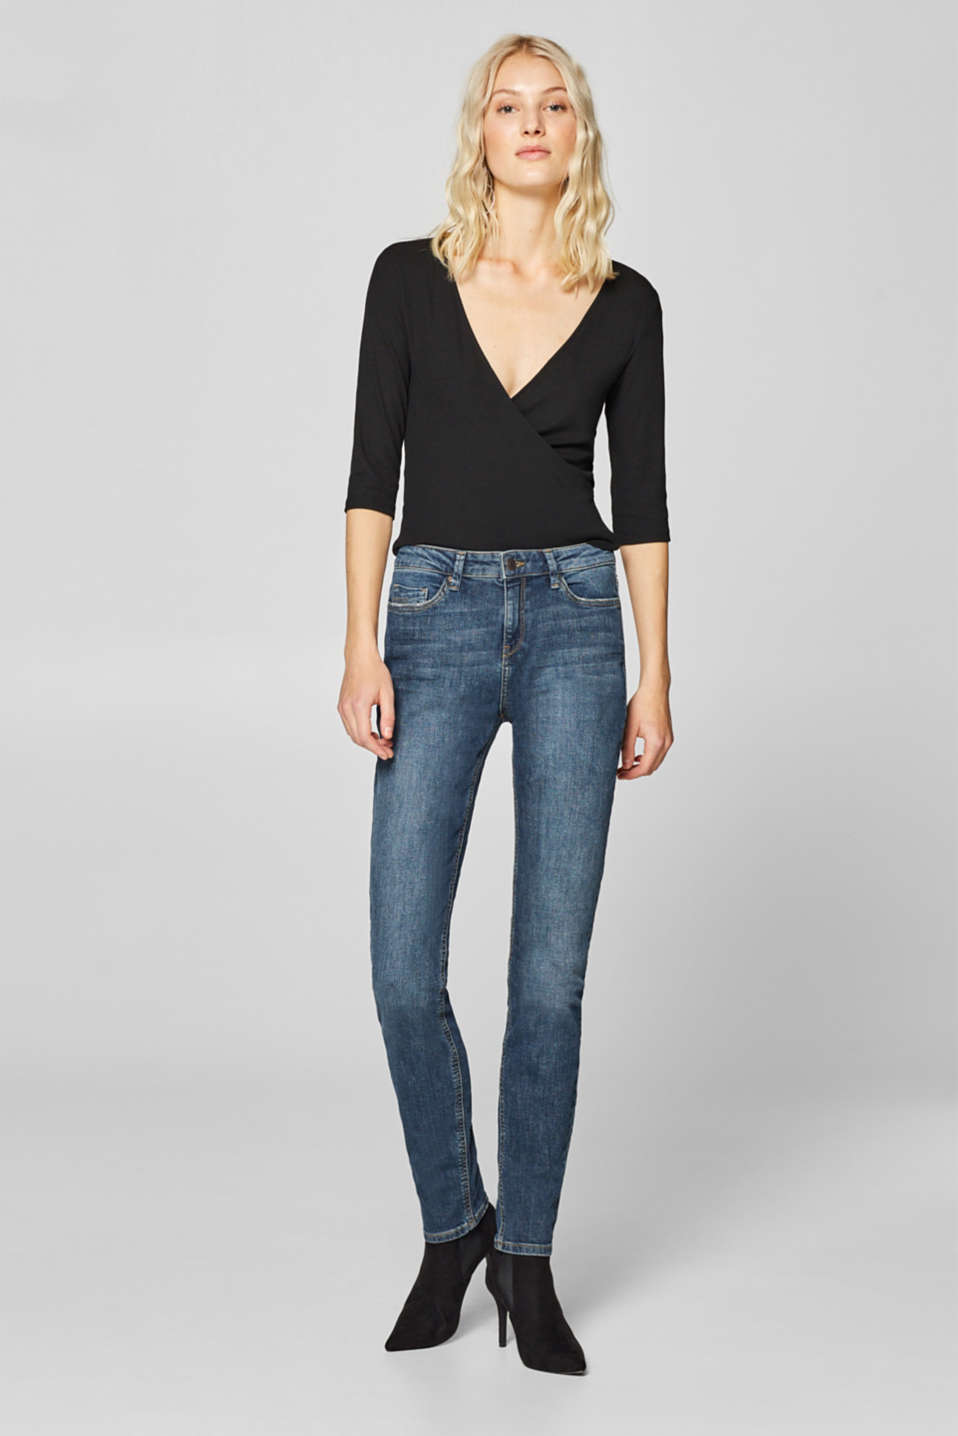 Esprit - Stretch jeans with wrinkled effects